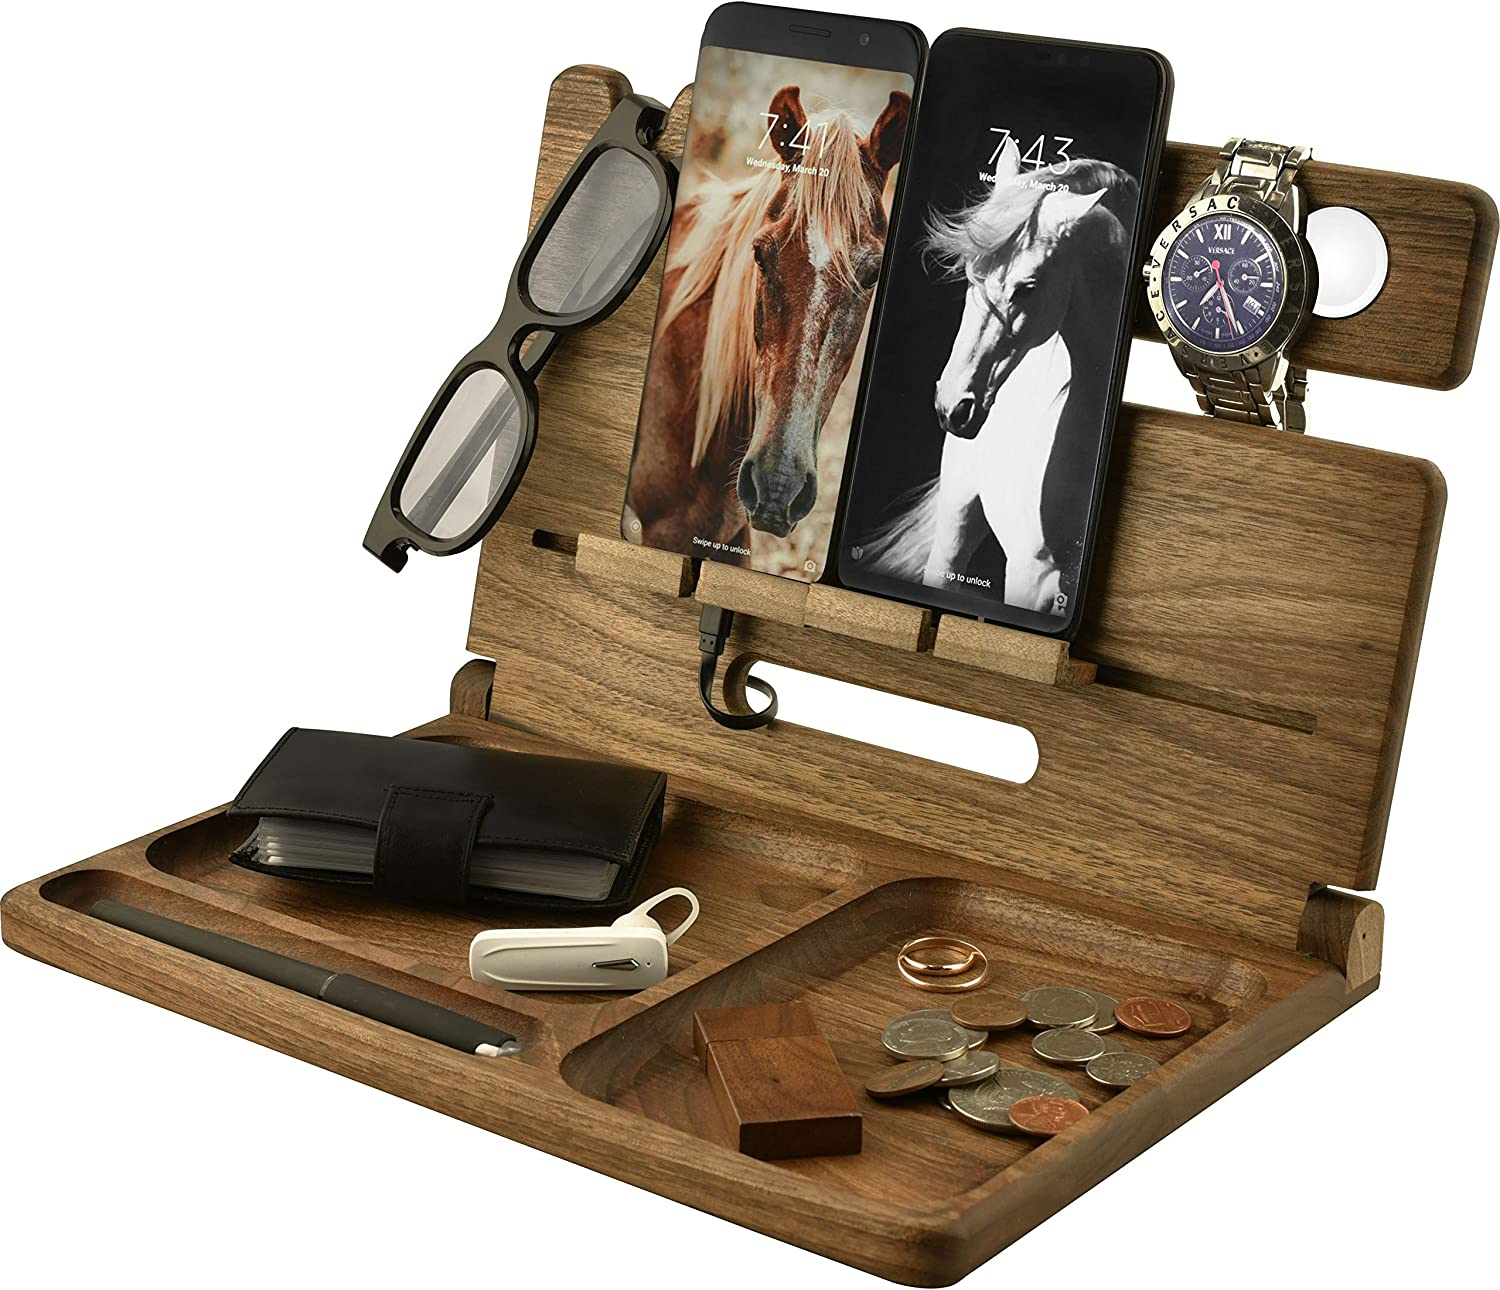 Natural Walnut Eco Wood Cell Phone Stand Watch Holder. Foldable Men Device Dock Accessory Organizer. Mobile Base Nightstand Charging Docking Station. Wooden Storage Funny Birthday Bed Side Caddy Valet